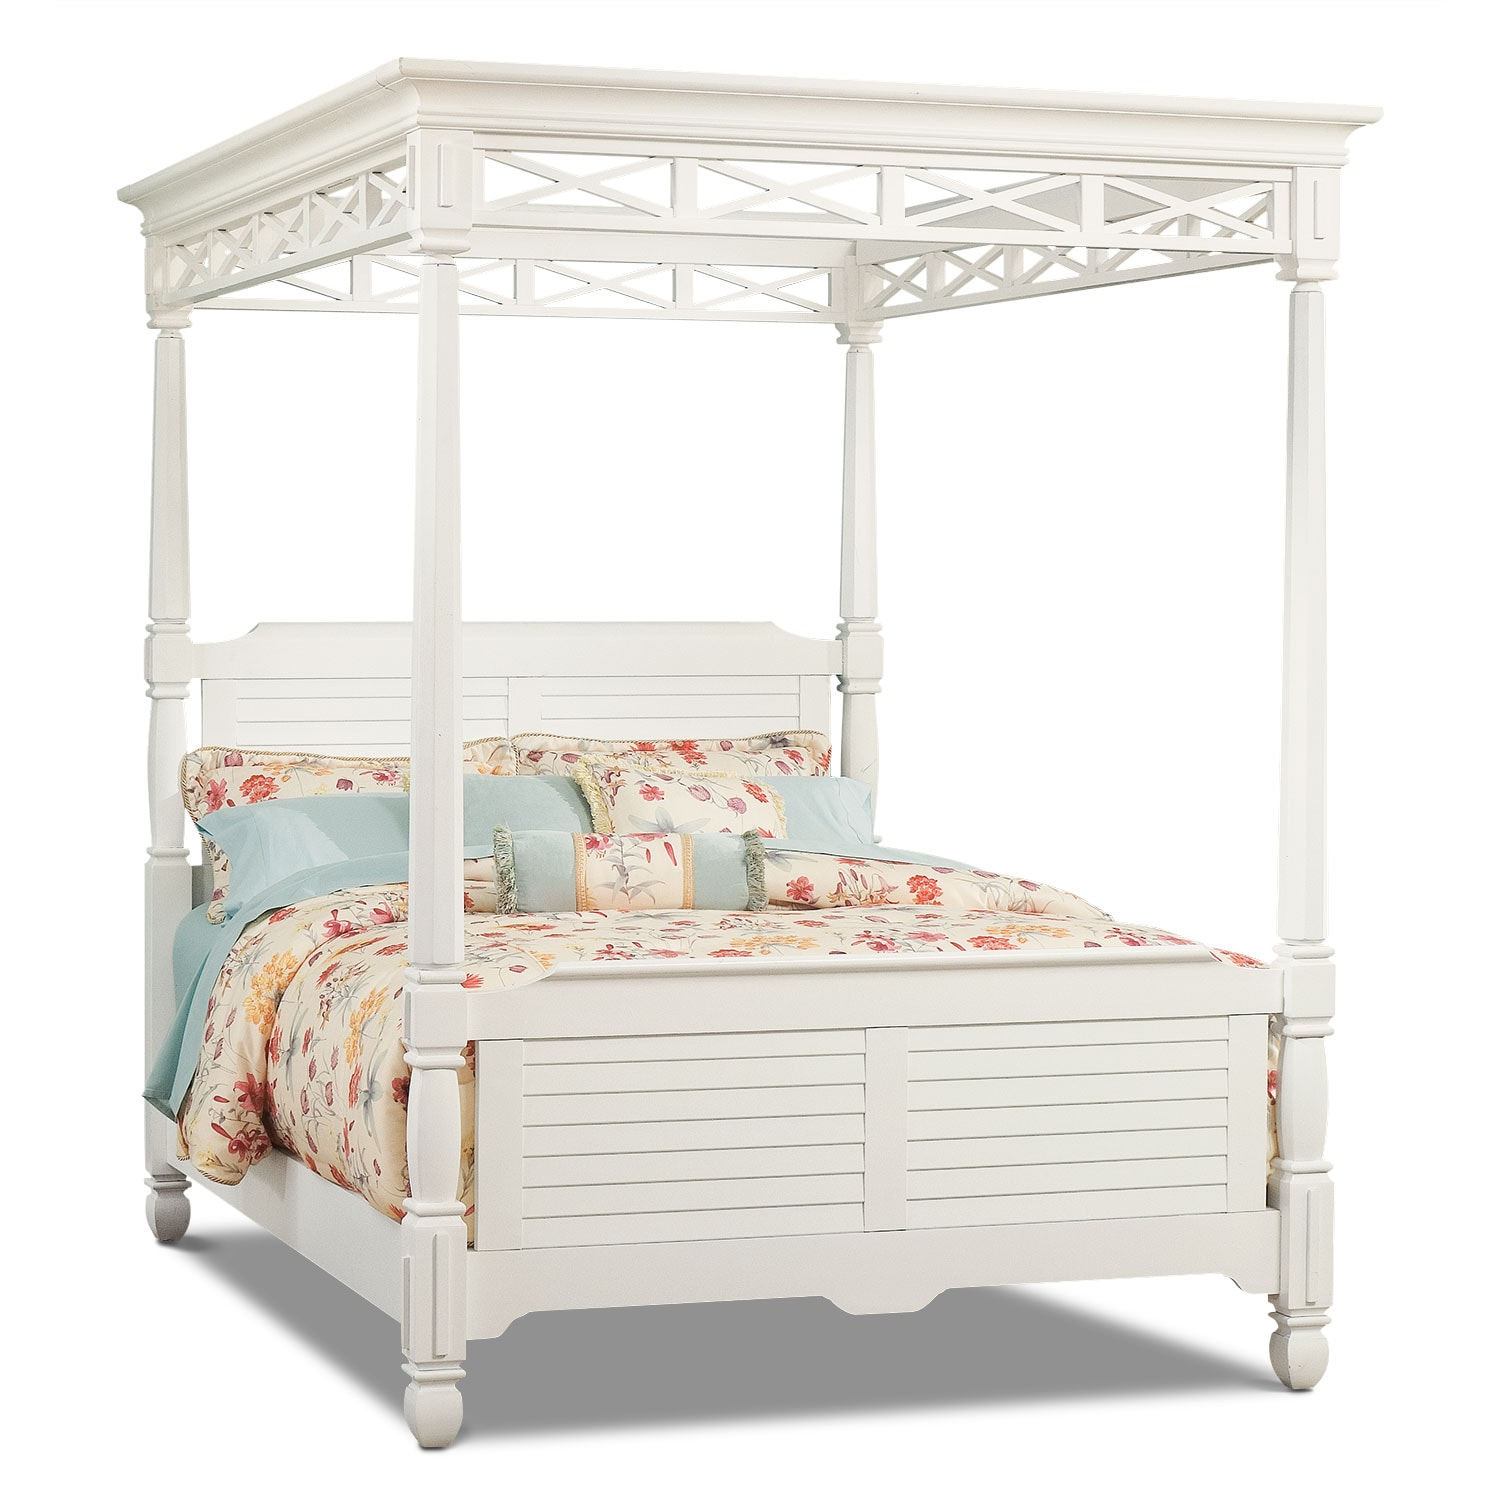 Bedroom Furniture - Plantation Cove White Canopy King Bed